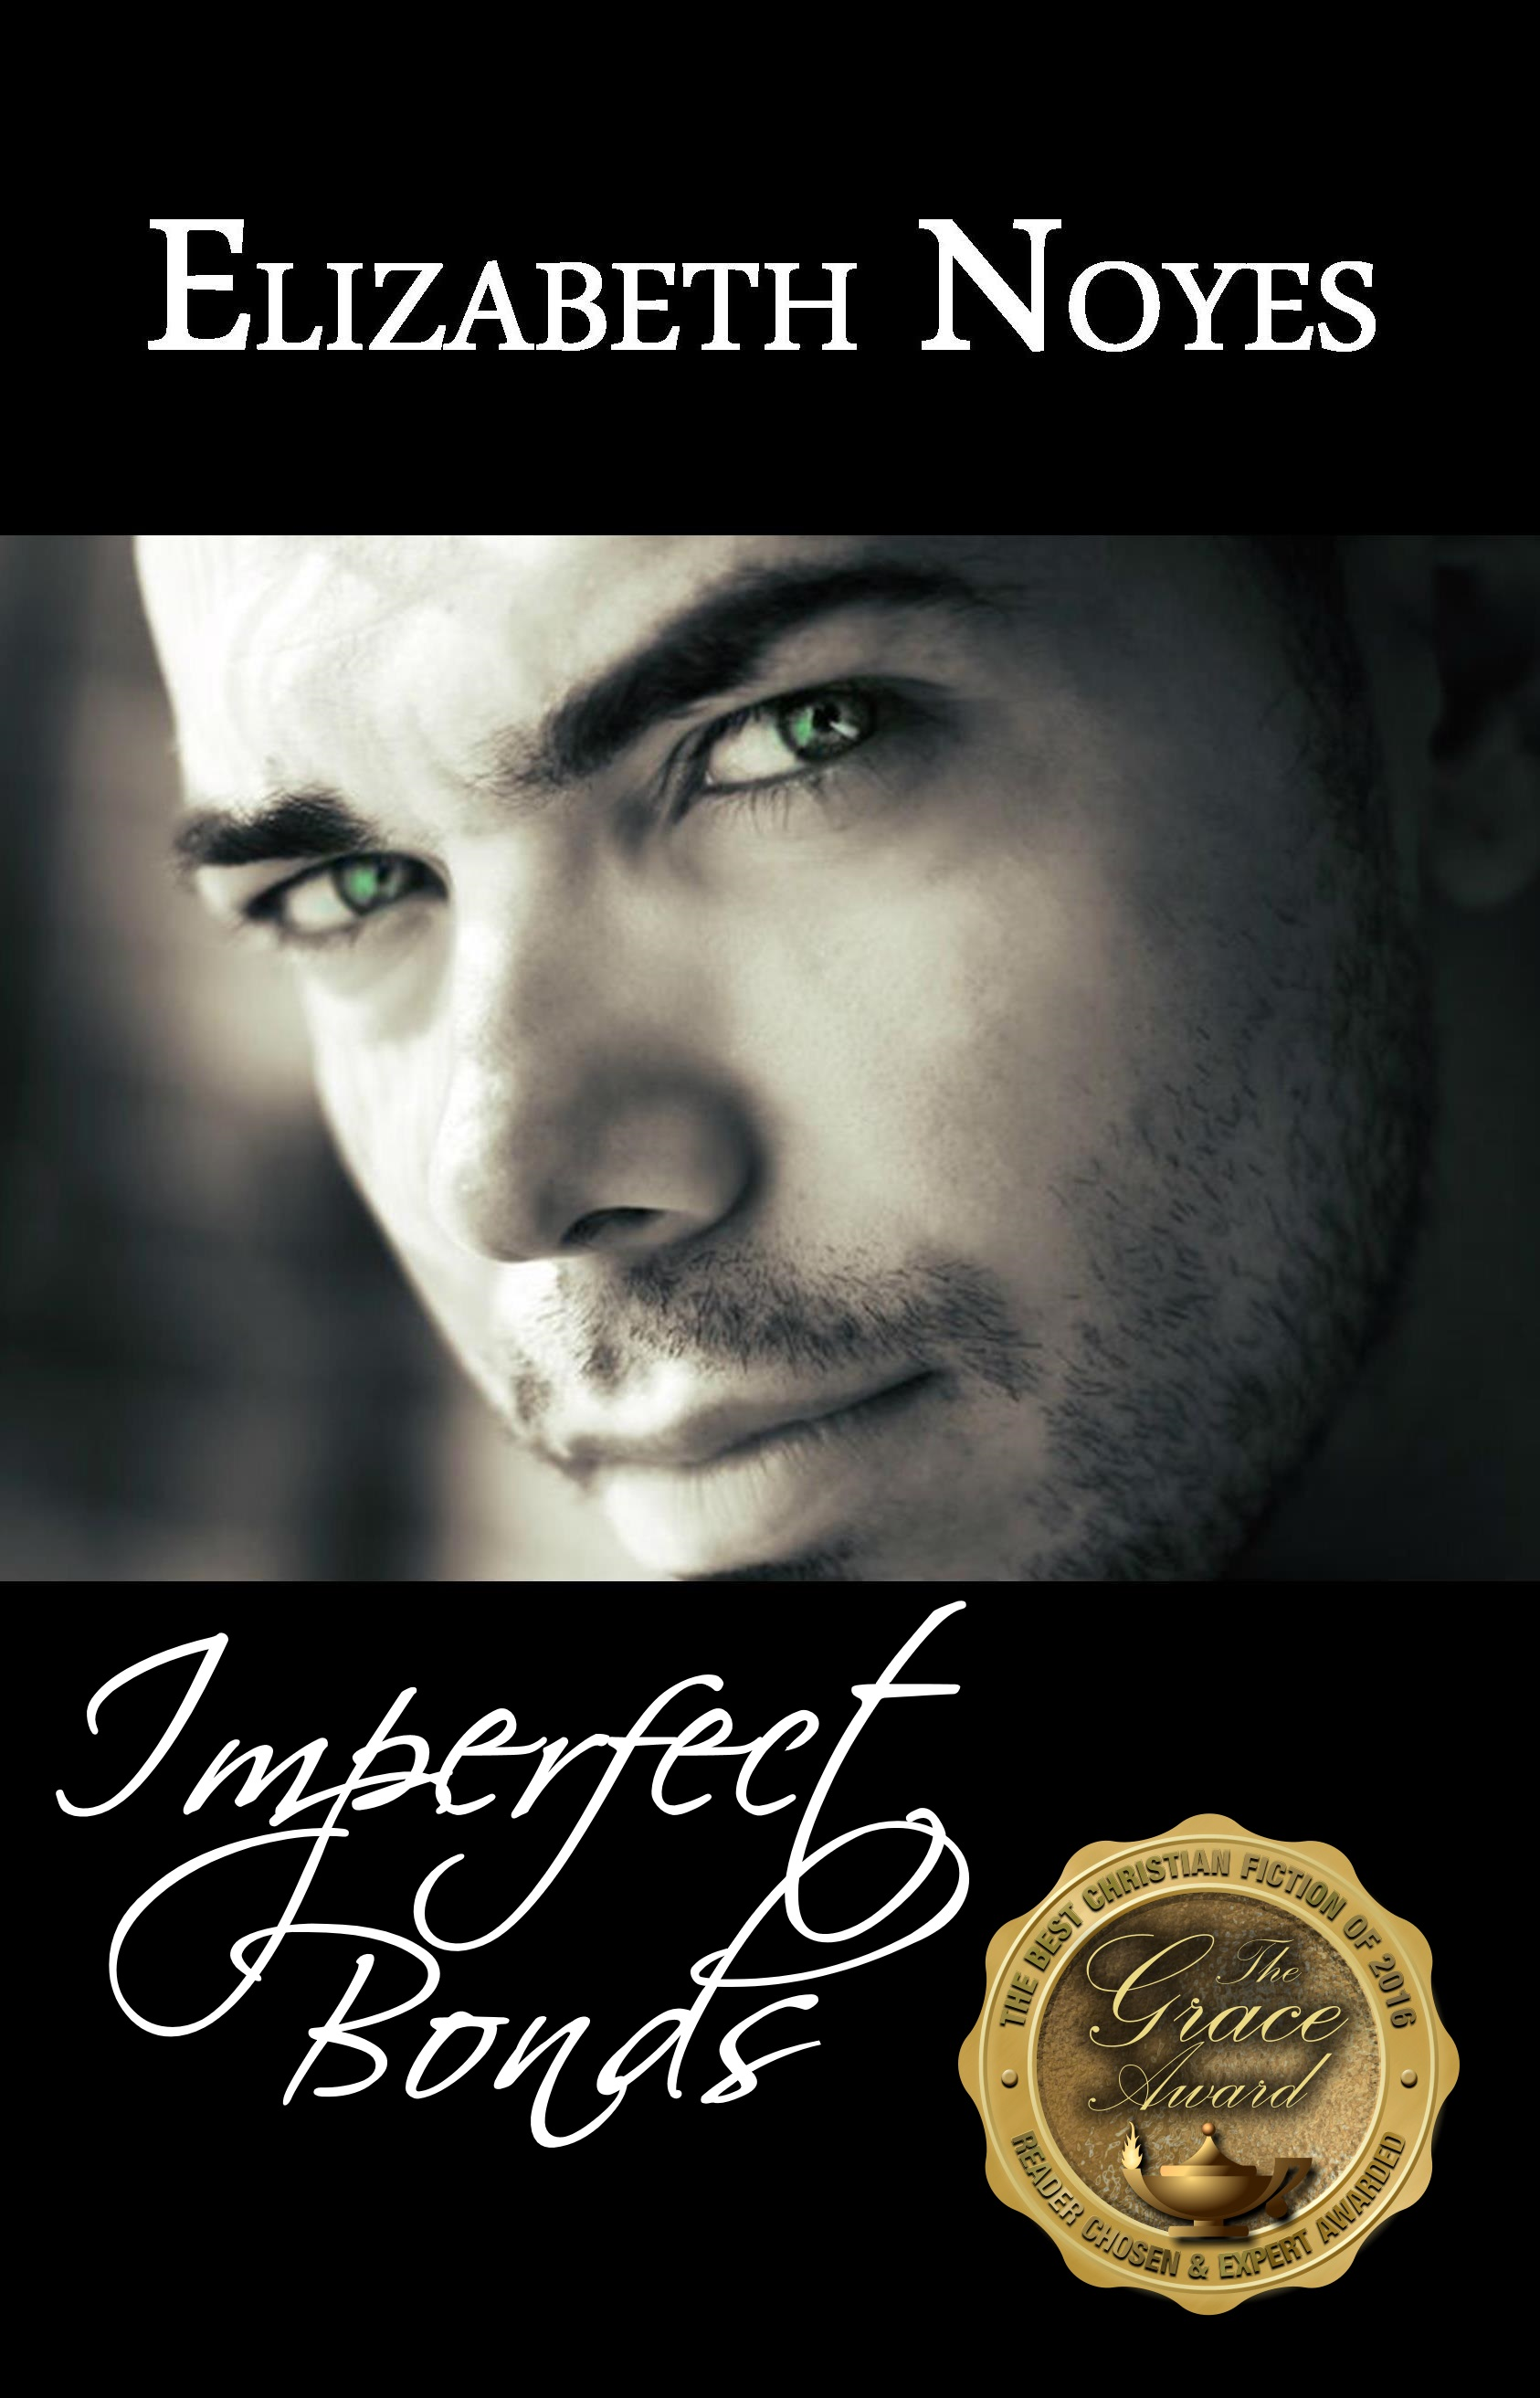 Imperfect Bonds is only 99¢